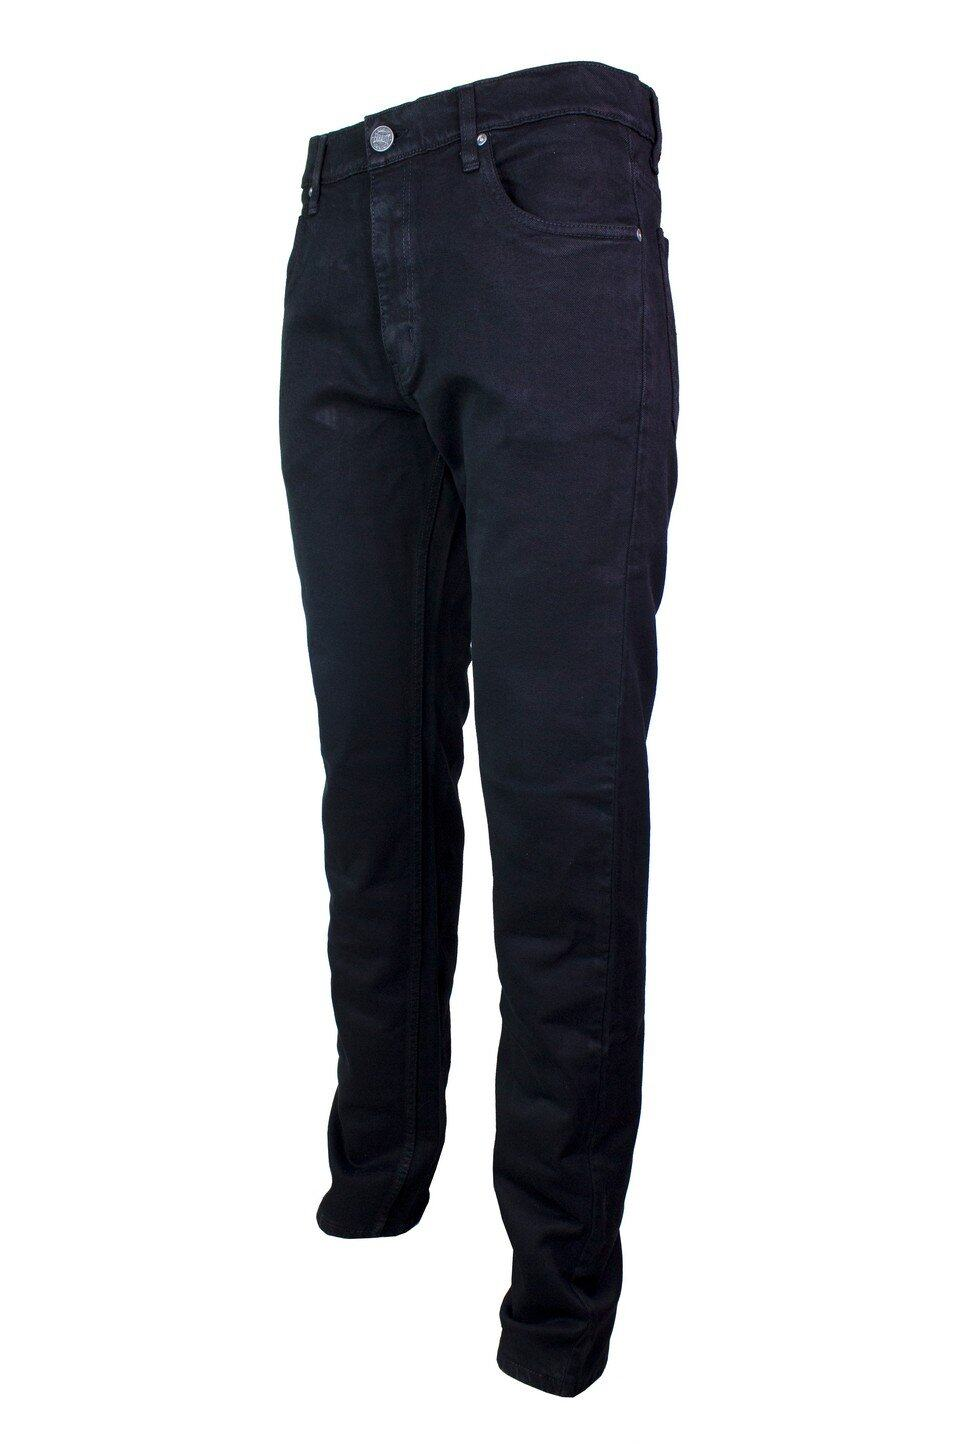 Exhaust Stretch Straight Cut Jean 854